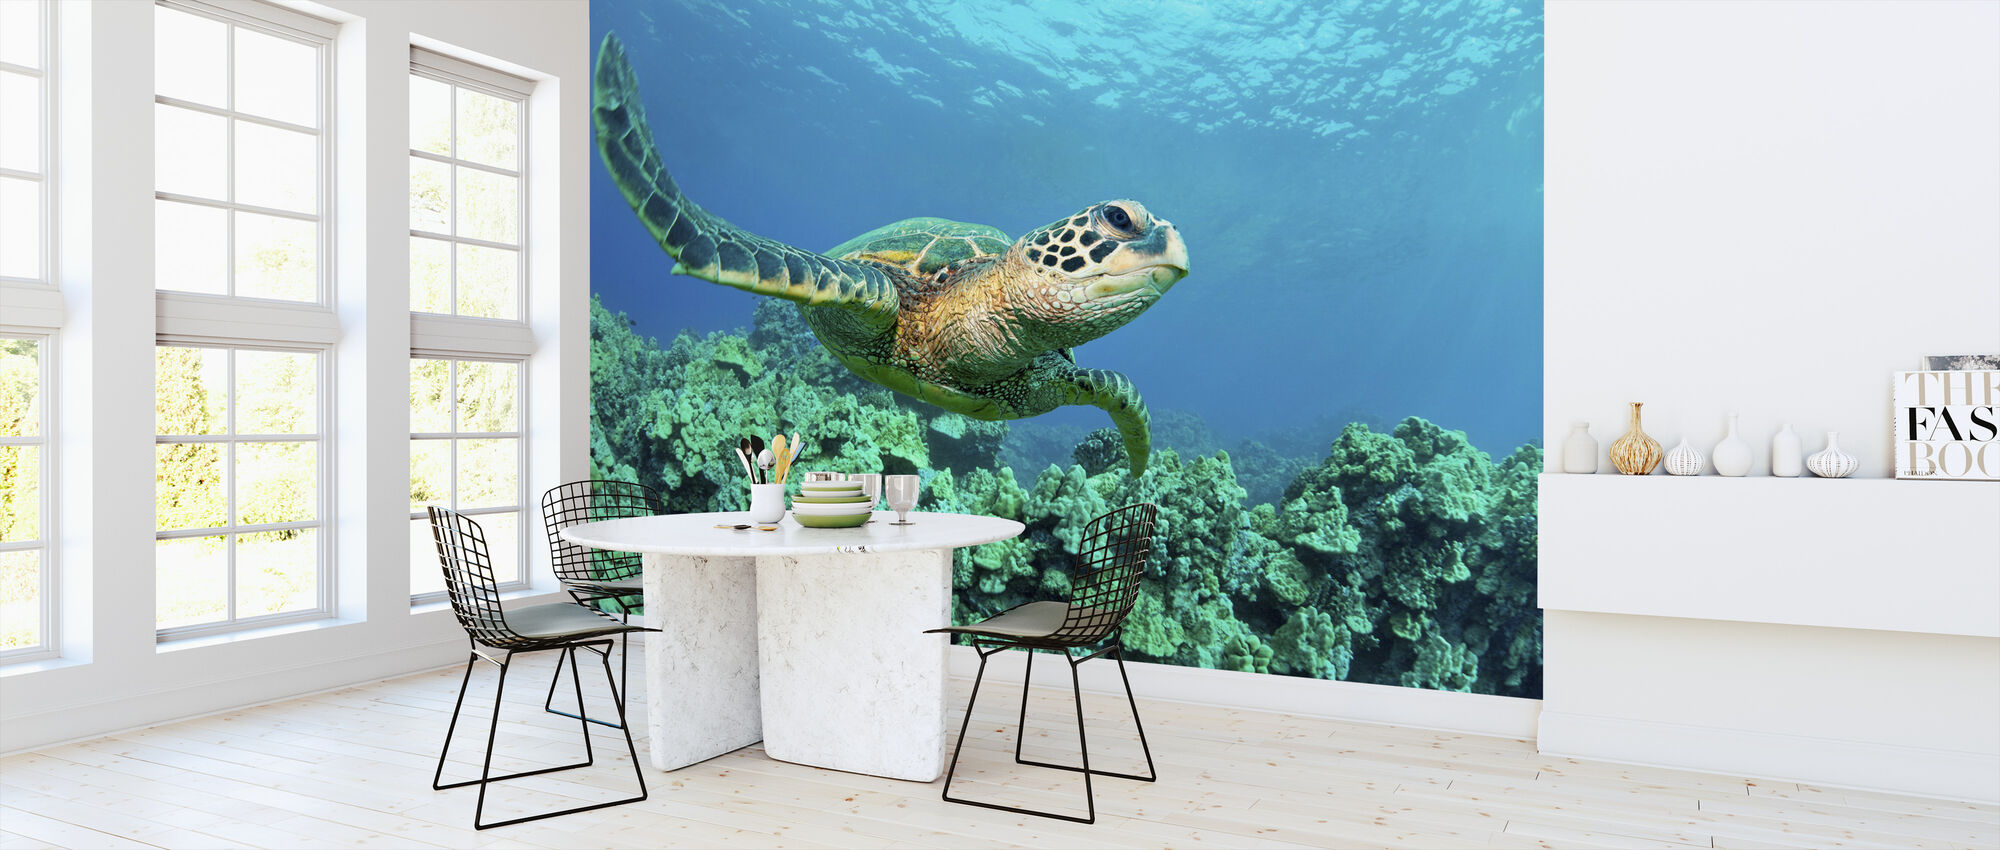 Sea Turtle in Coral - Wallpaper - Kitchen